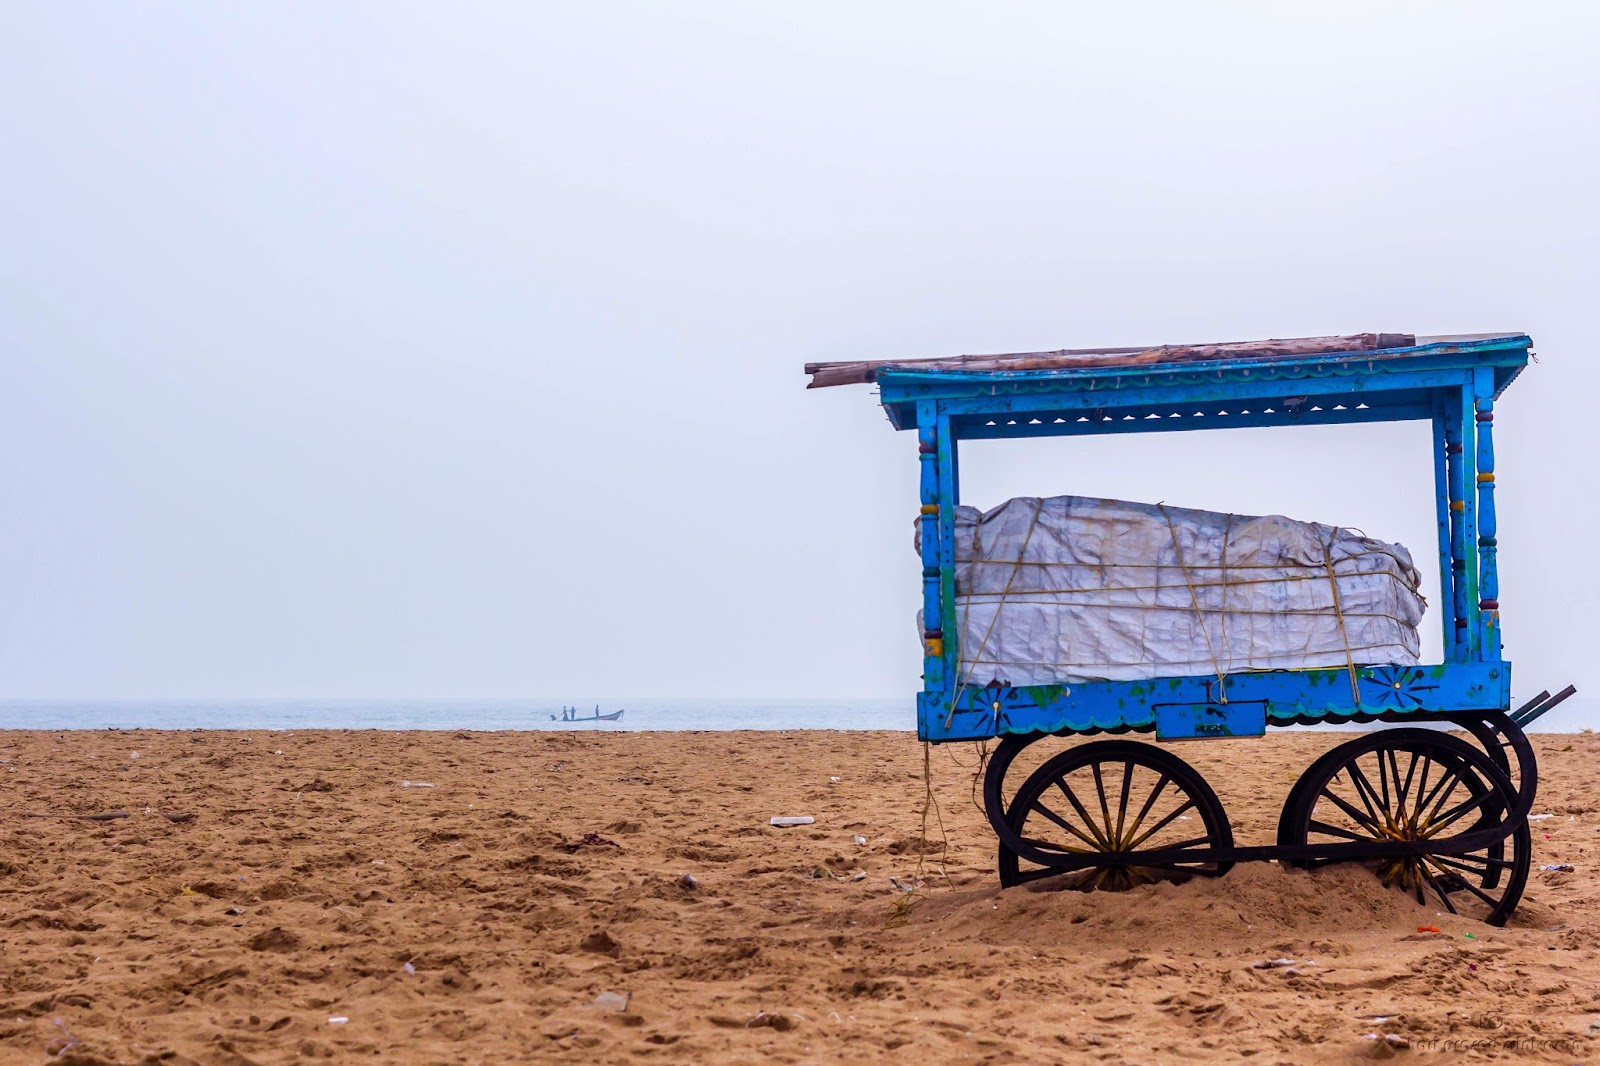 Photo of a cart with a roof on it which is used to set-up shop in Chennai beach. Photo taken on a cloudy day.